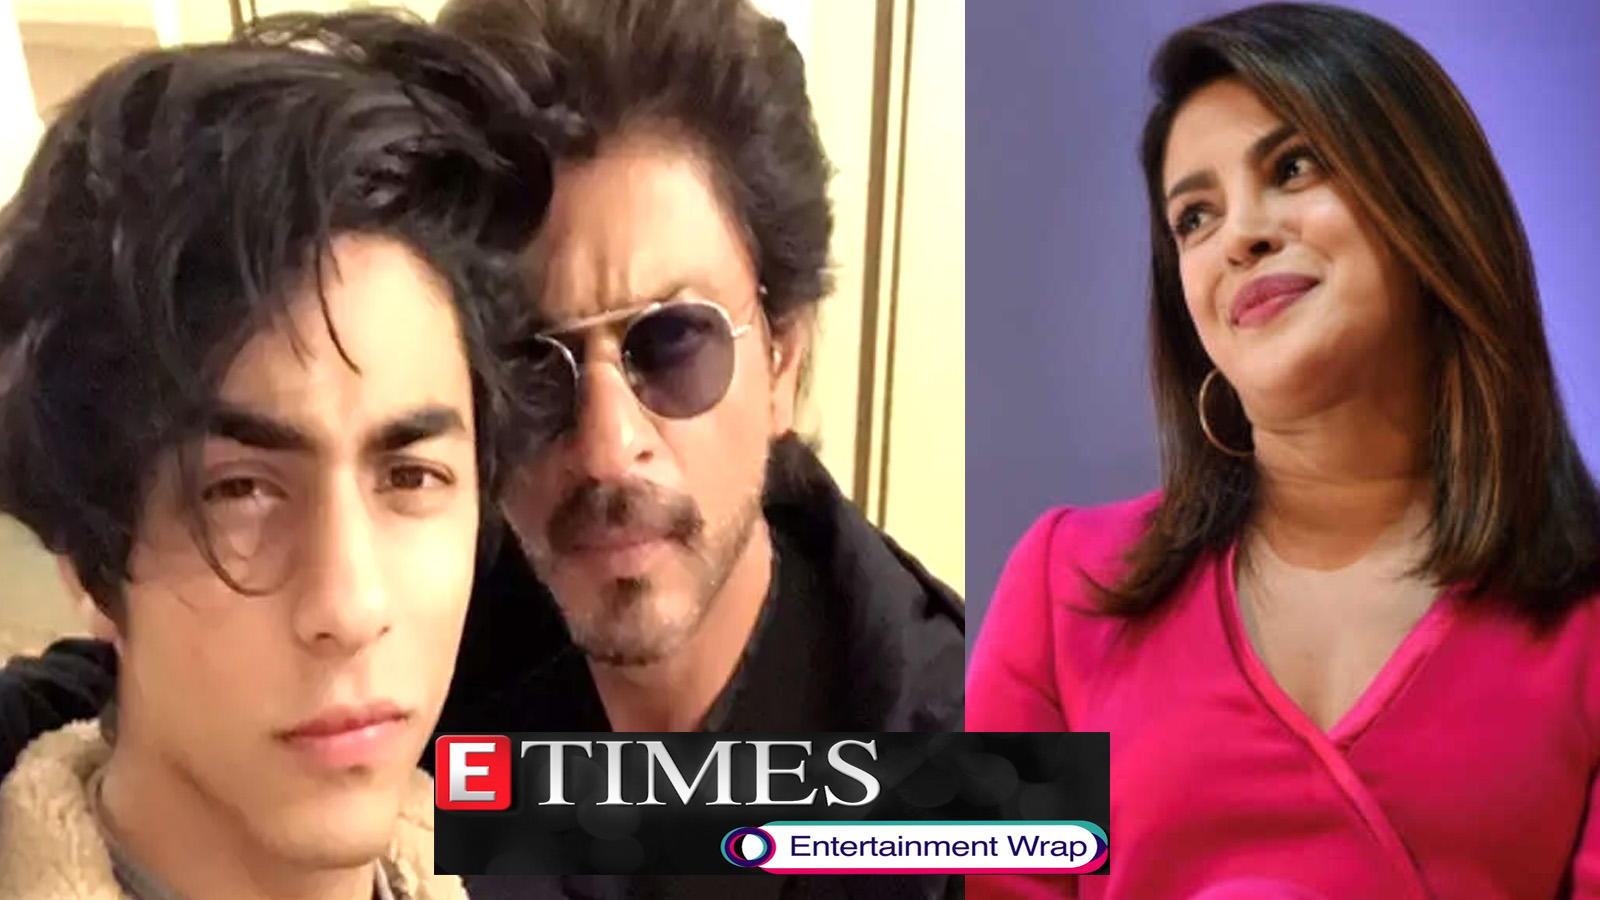 shah-rukh-khan-and-son-cheer-for-team-india-priyanka-chopra-prefers-this-dance-partner-over-hubby-nick-and-more